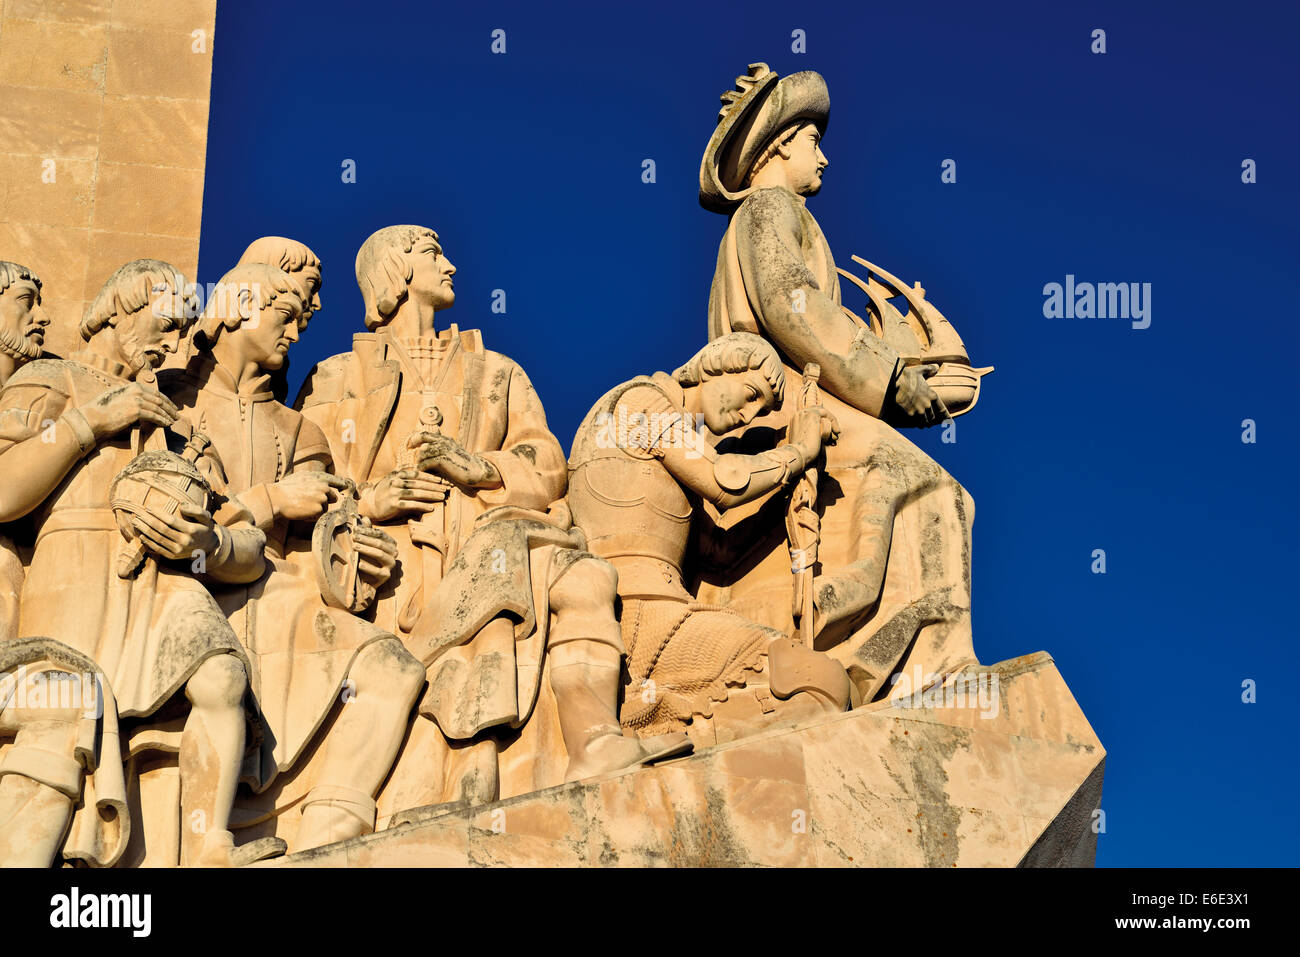 Portugal, Lisbon: Sculptures of the Discoverie´s Monument - Stock Image